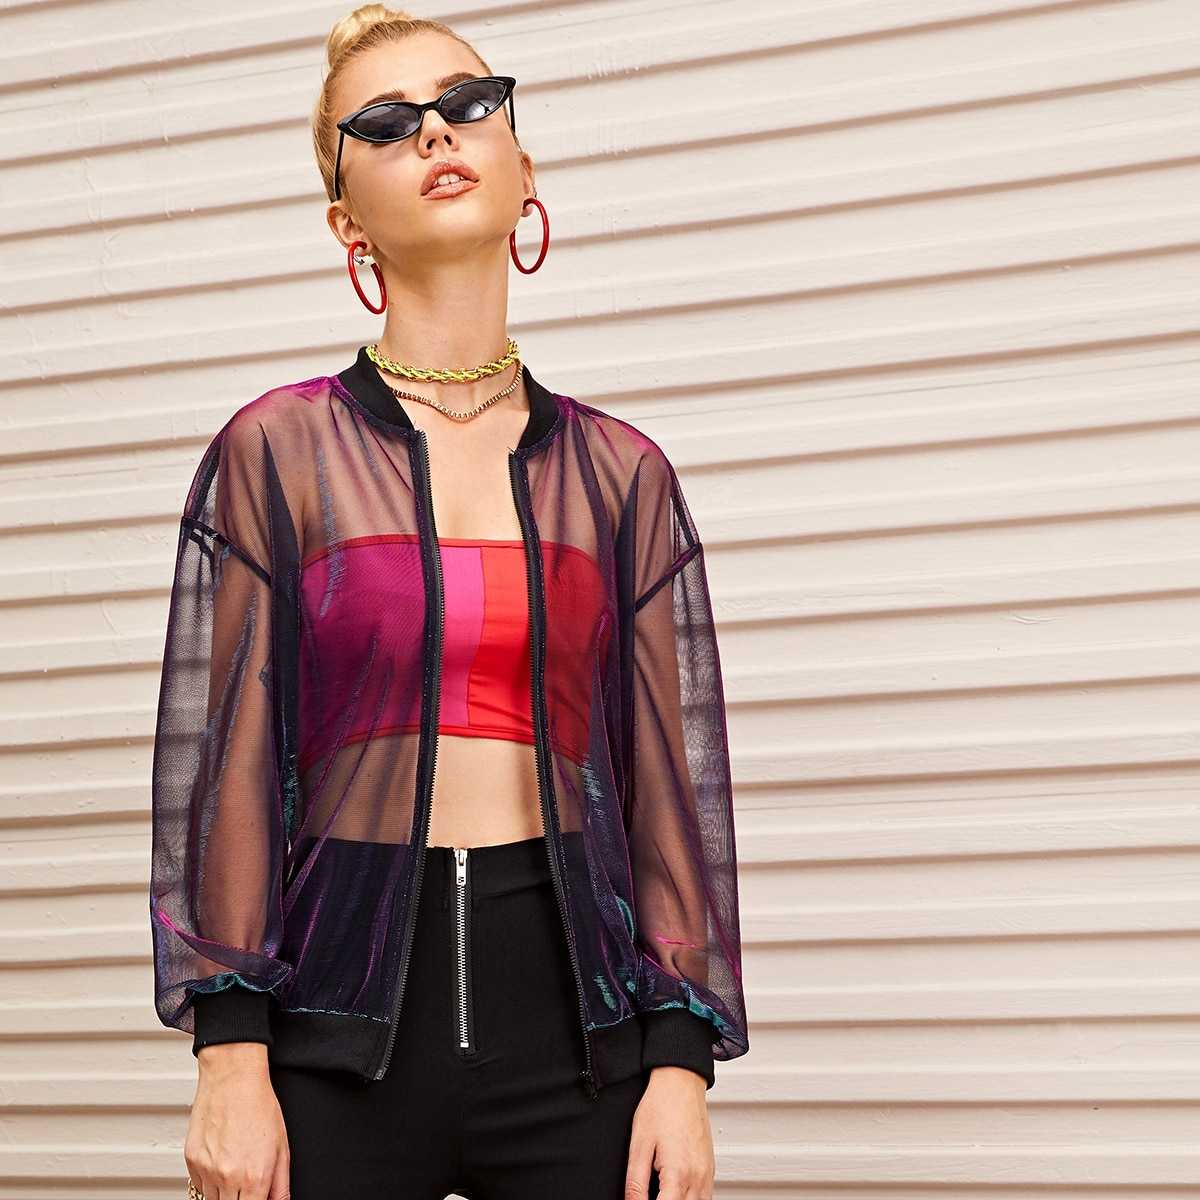 Zip Up Glitter Mesh Bomber Jacket in Multicolor by ROMWE on GOOFASH